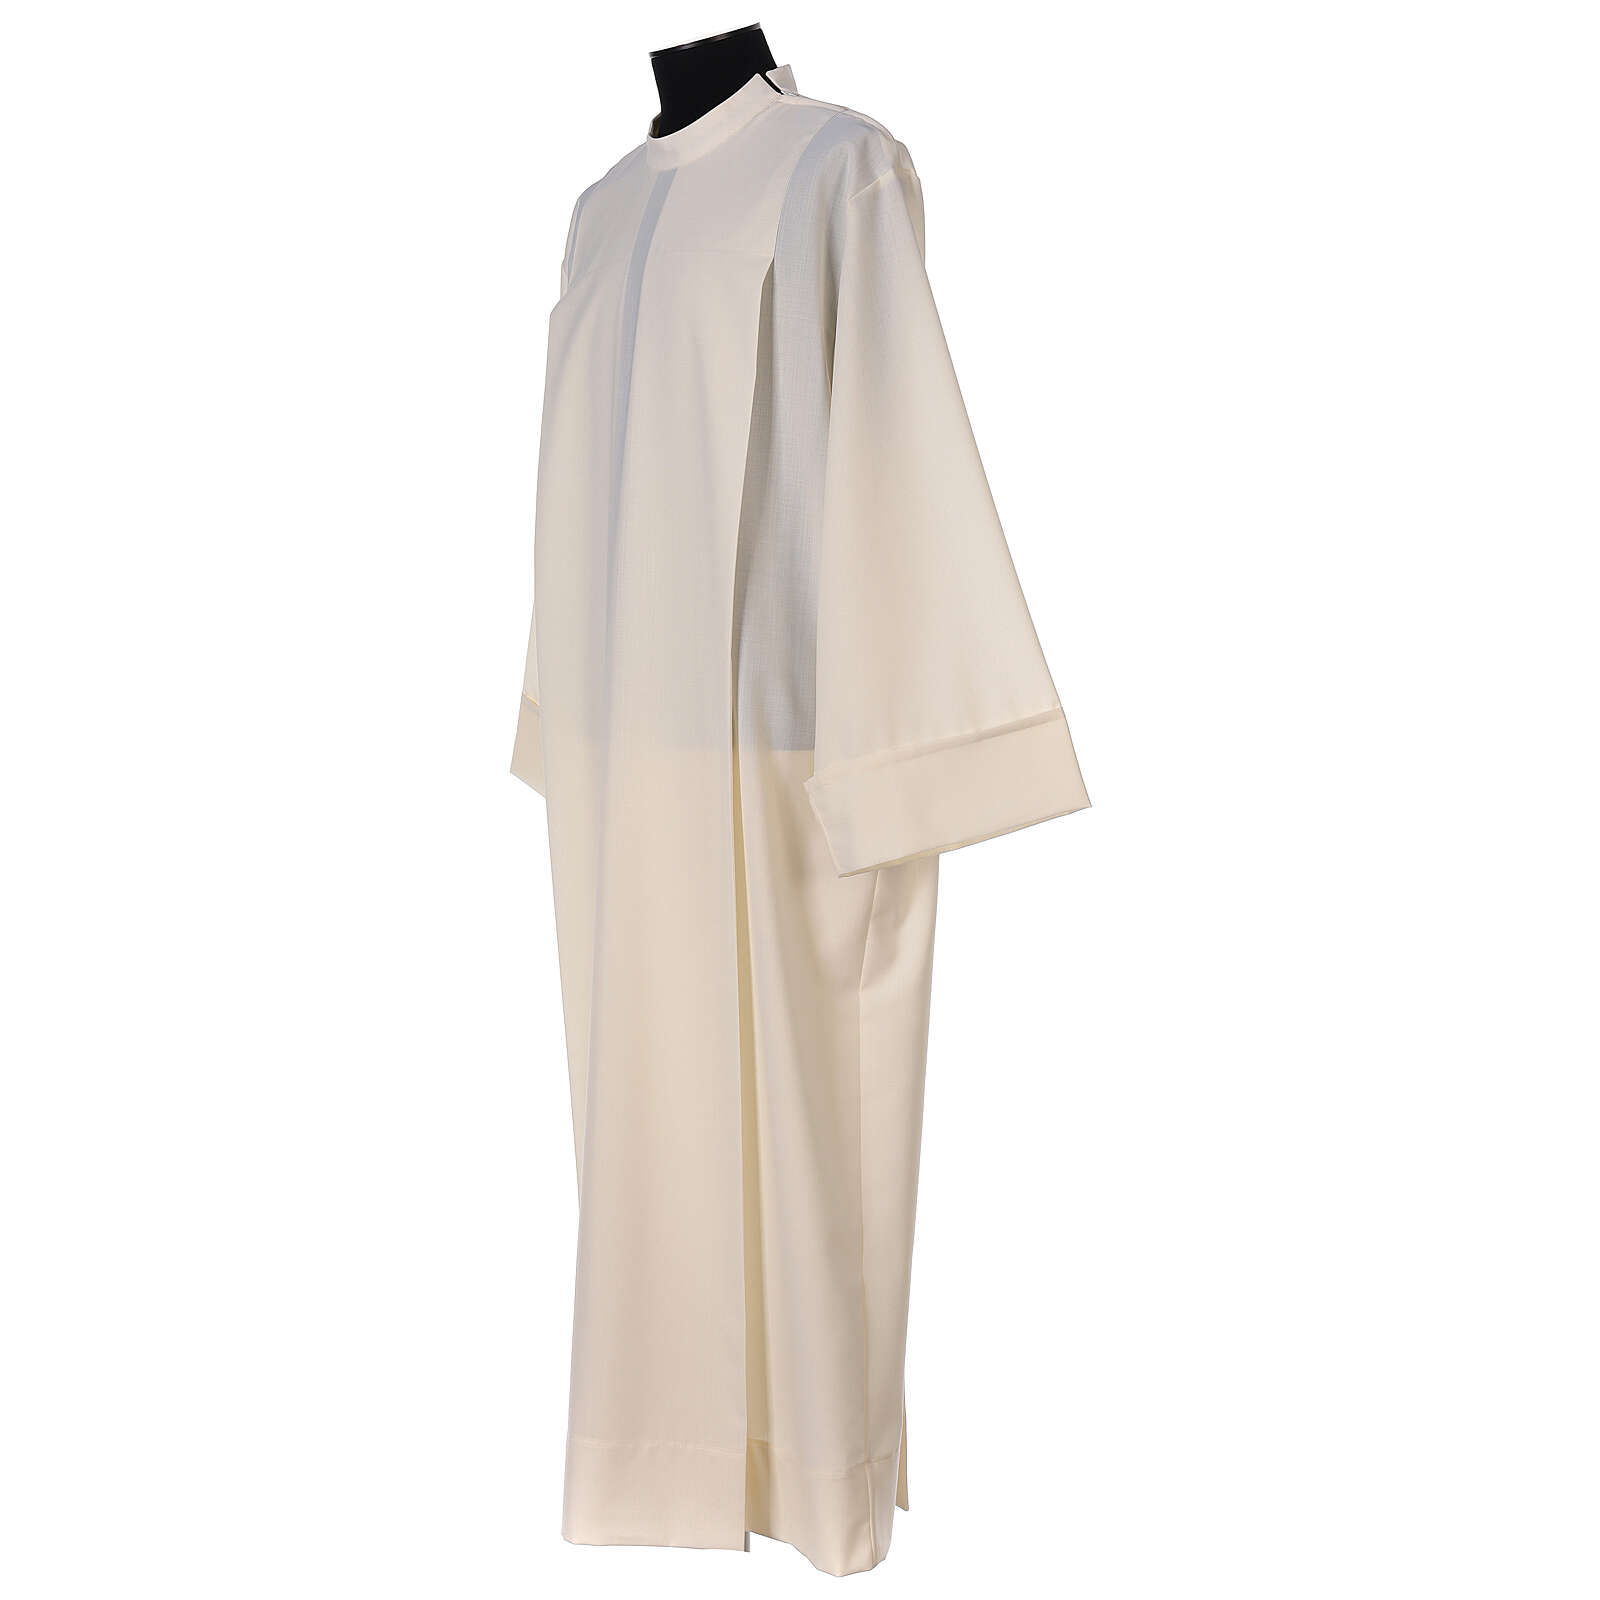 Liturgical Alb 55% polyester 45% wool with shoulder zipper, ivory color 4